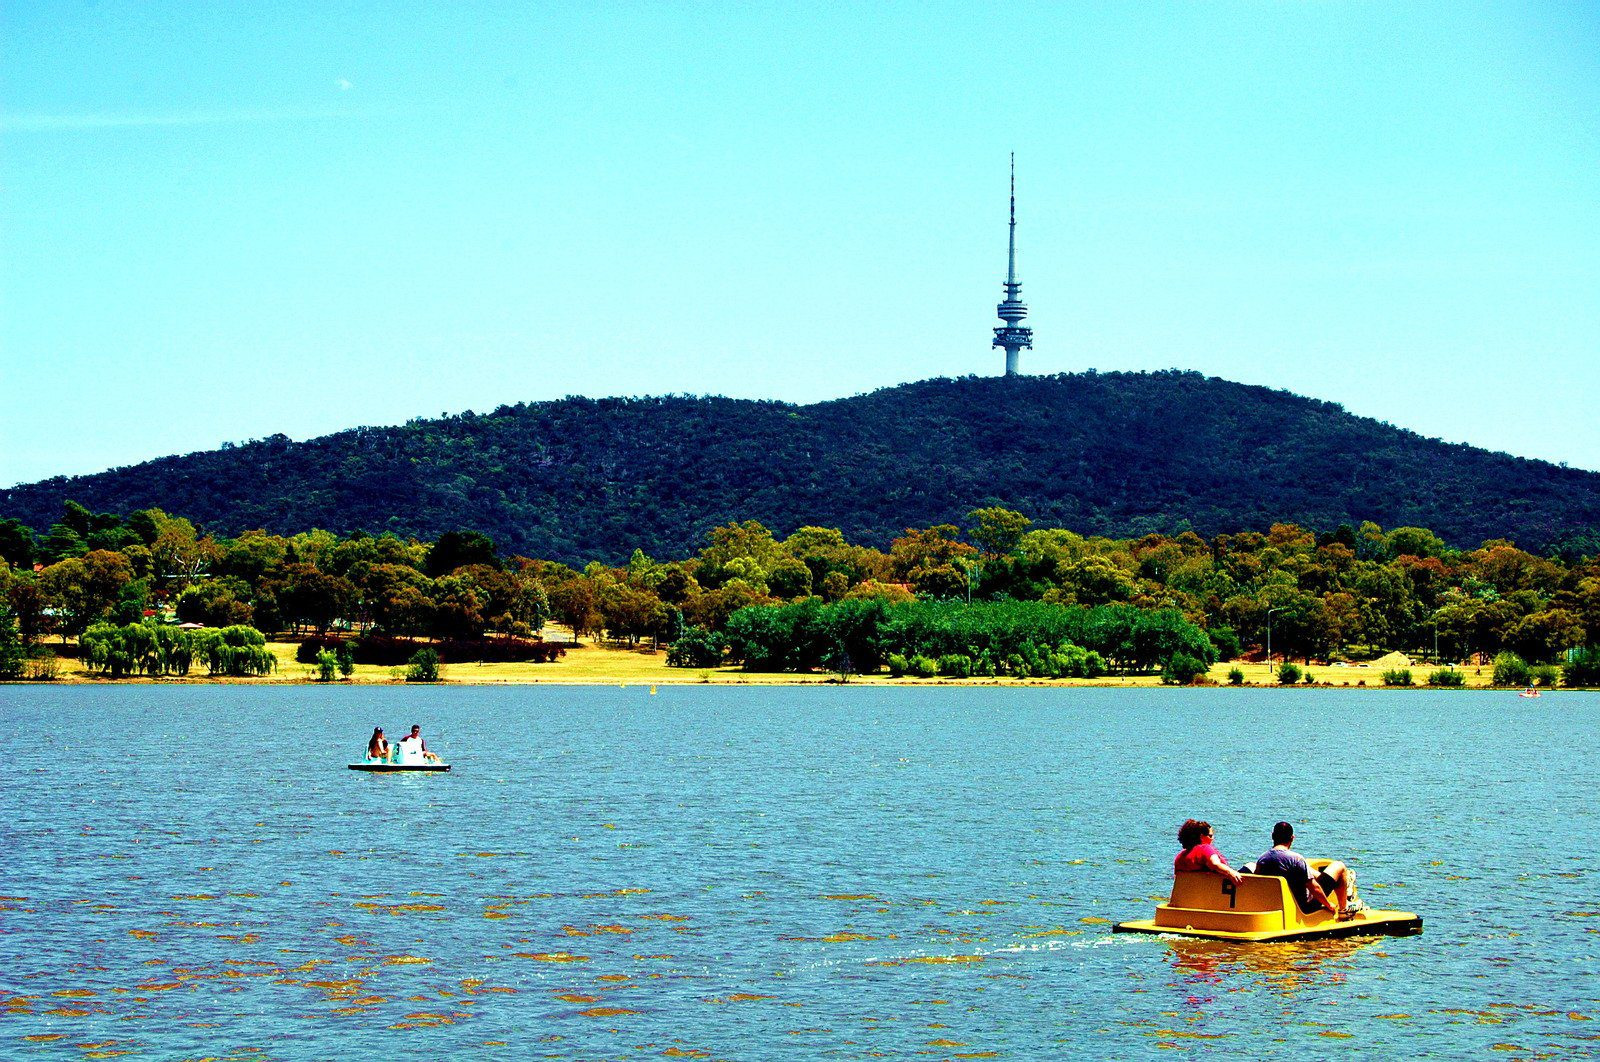 Black Mountain Tower in Canberra, Australia